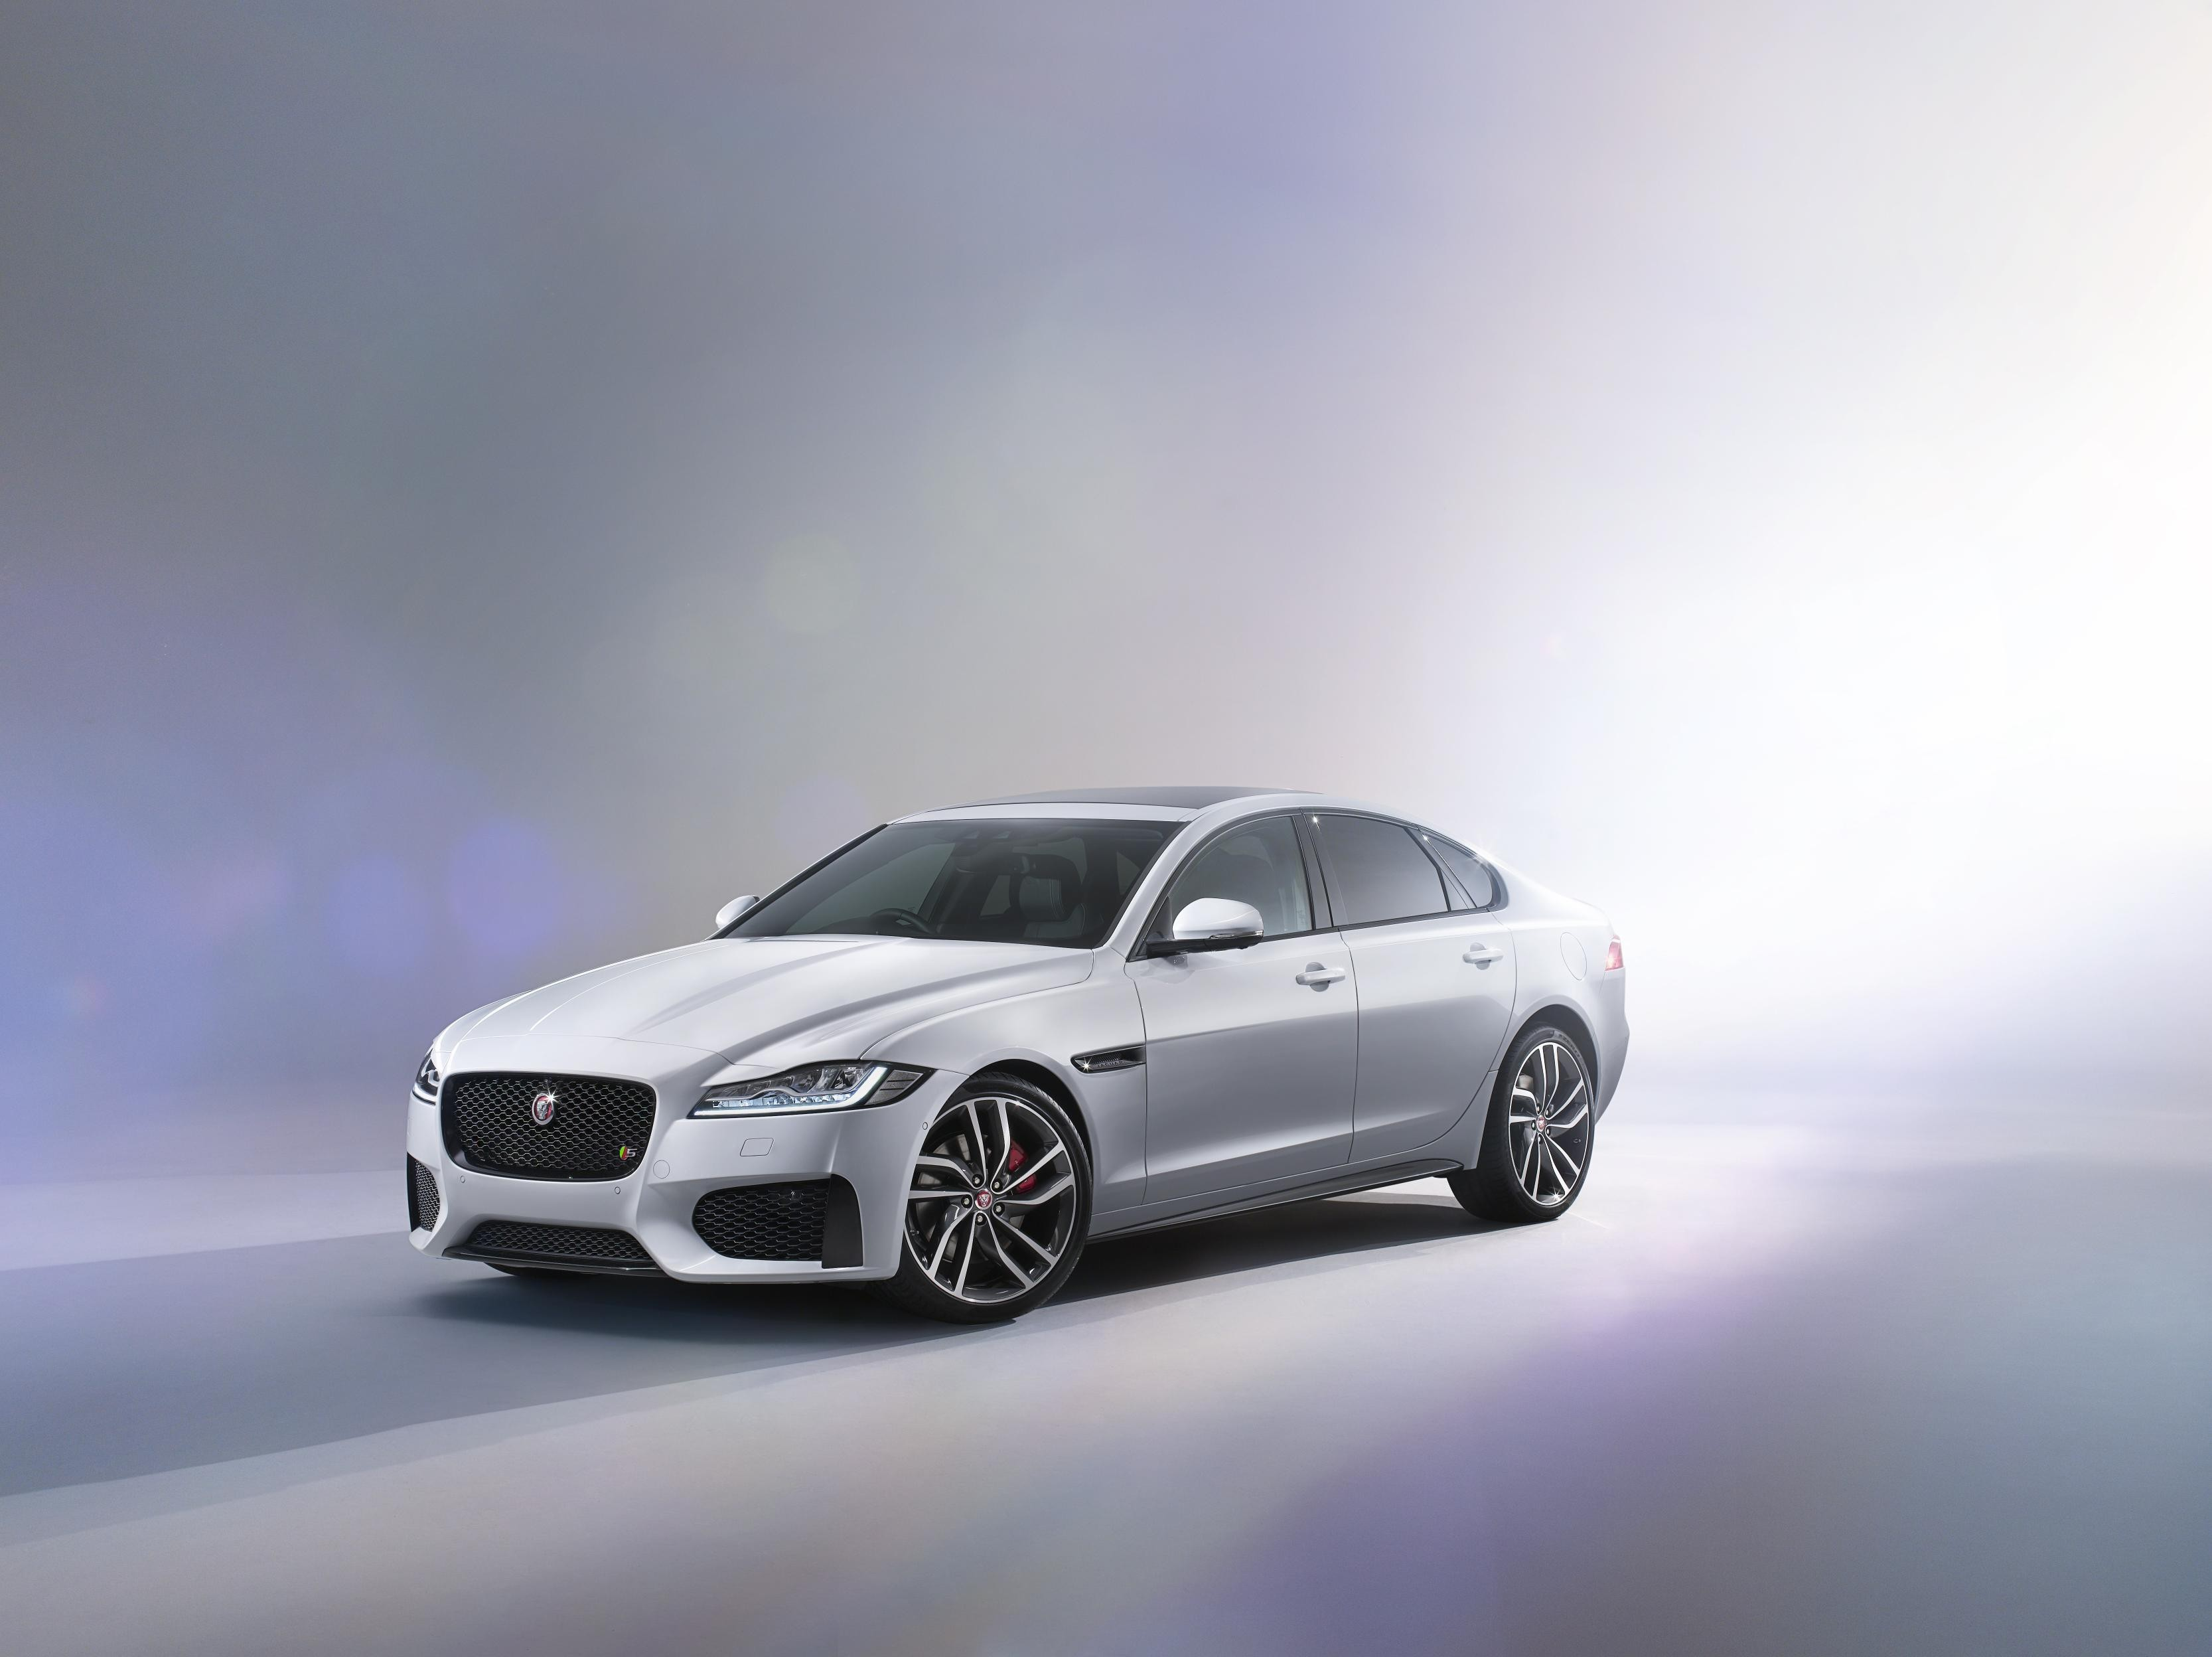 Jaguar Discontinues XE S and XF S in Europe Over WLTP Regulations - autoevolution